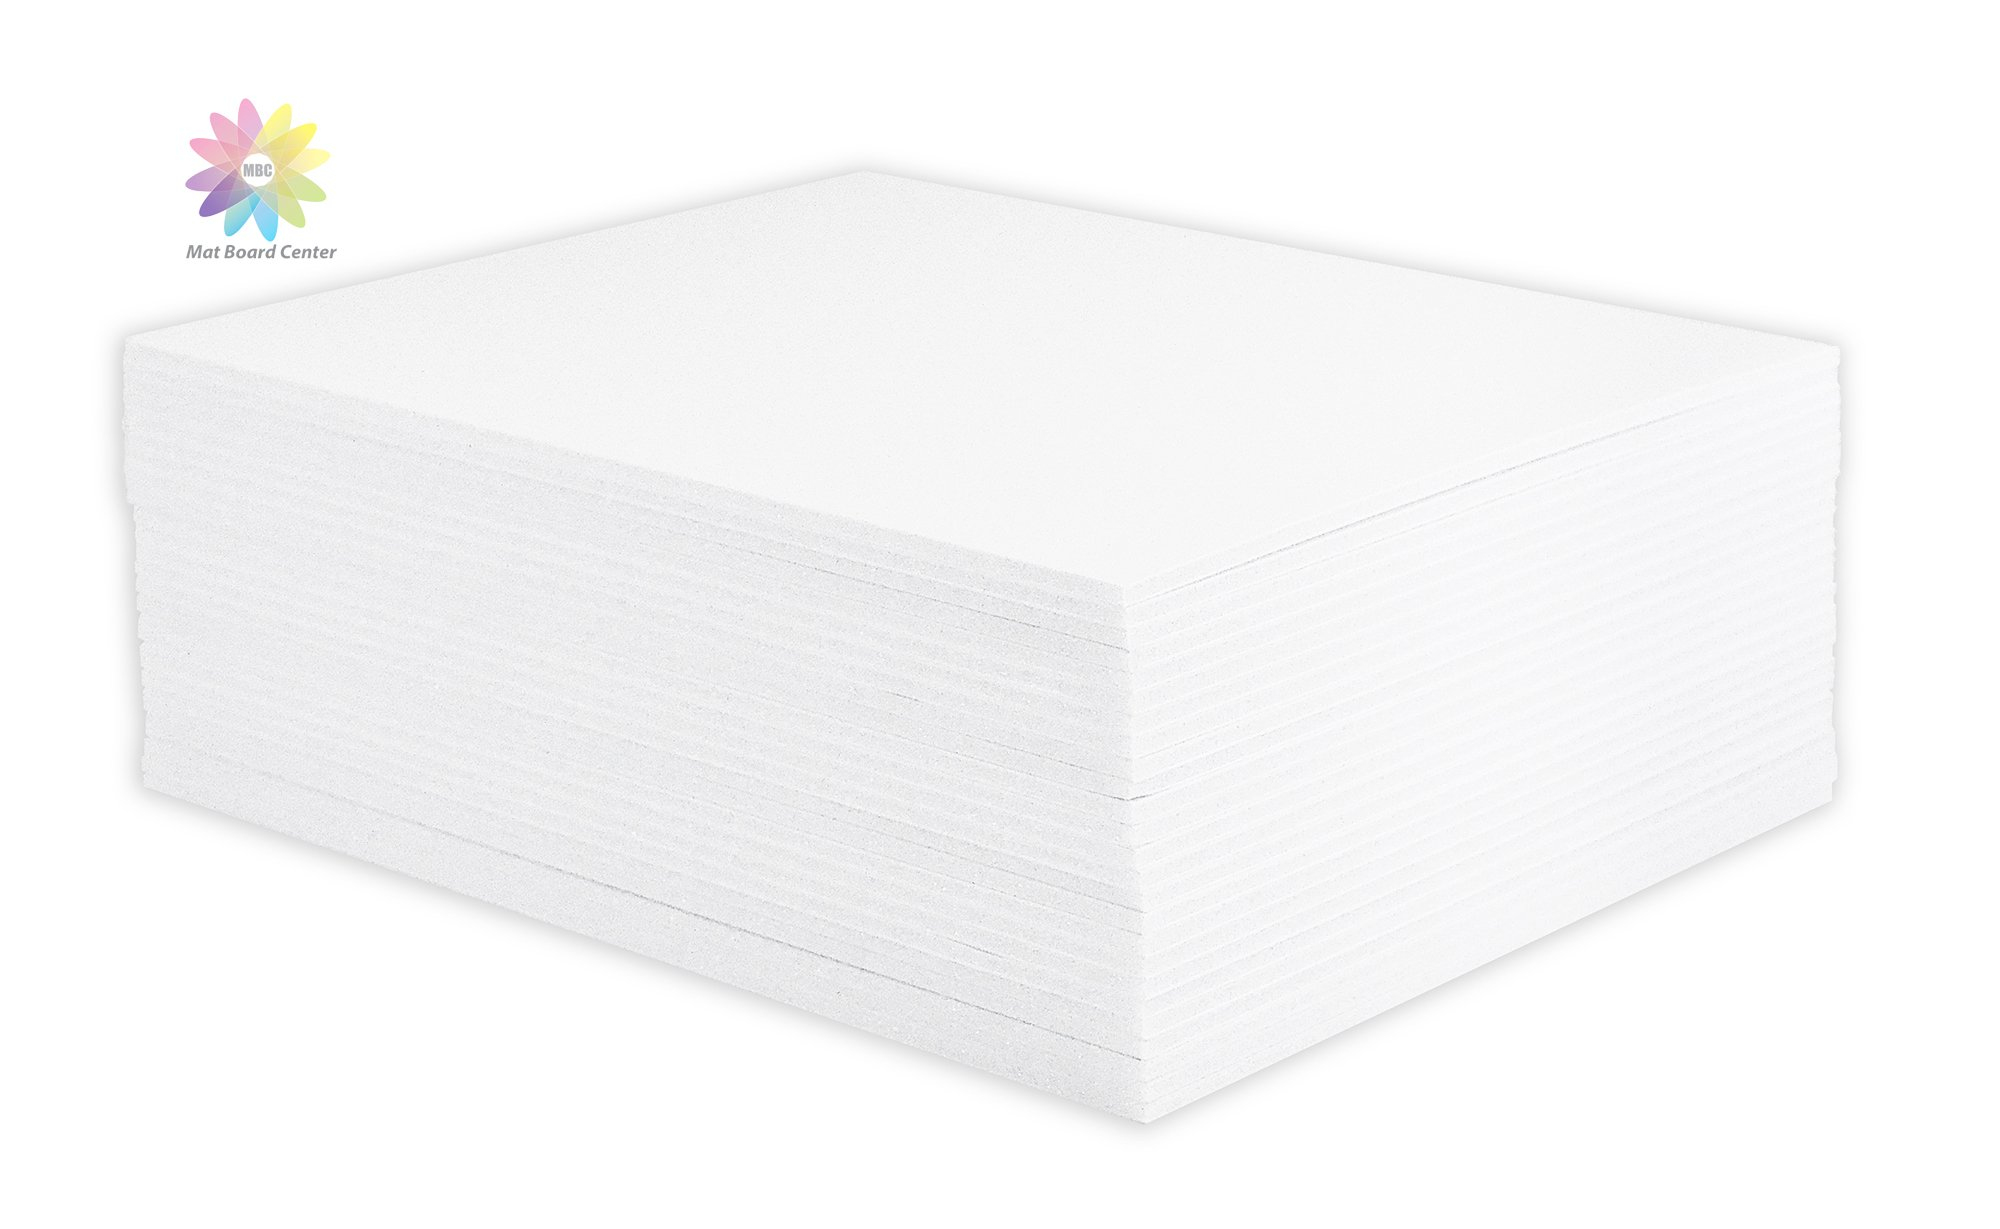 Mat Board Center, Pack of 25 11x14 1/8 White Foam Core Backing Boards